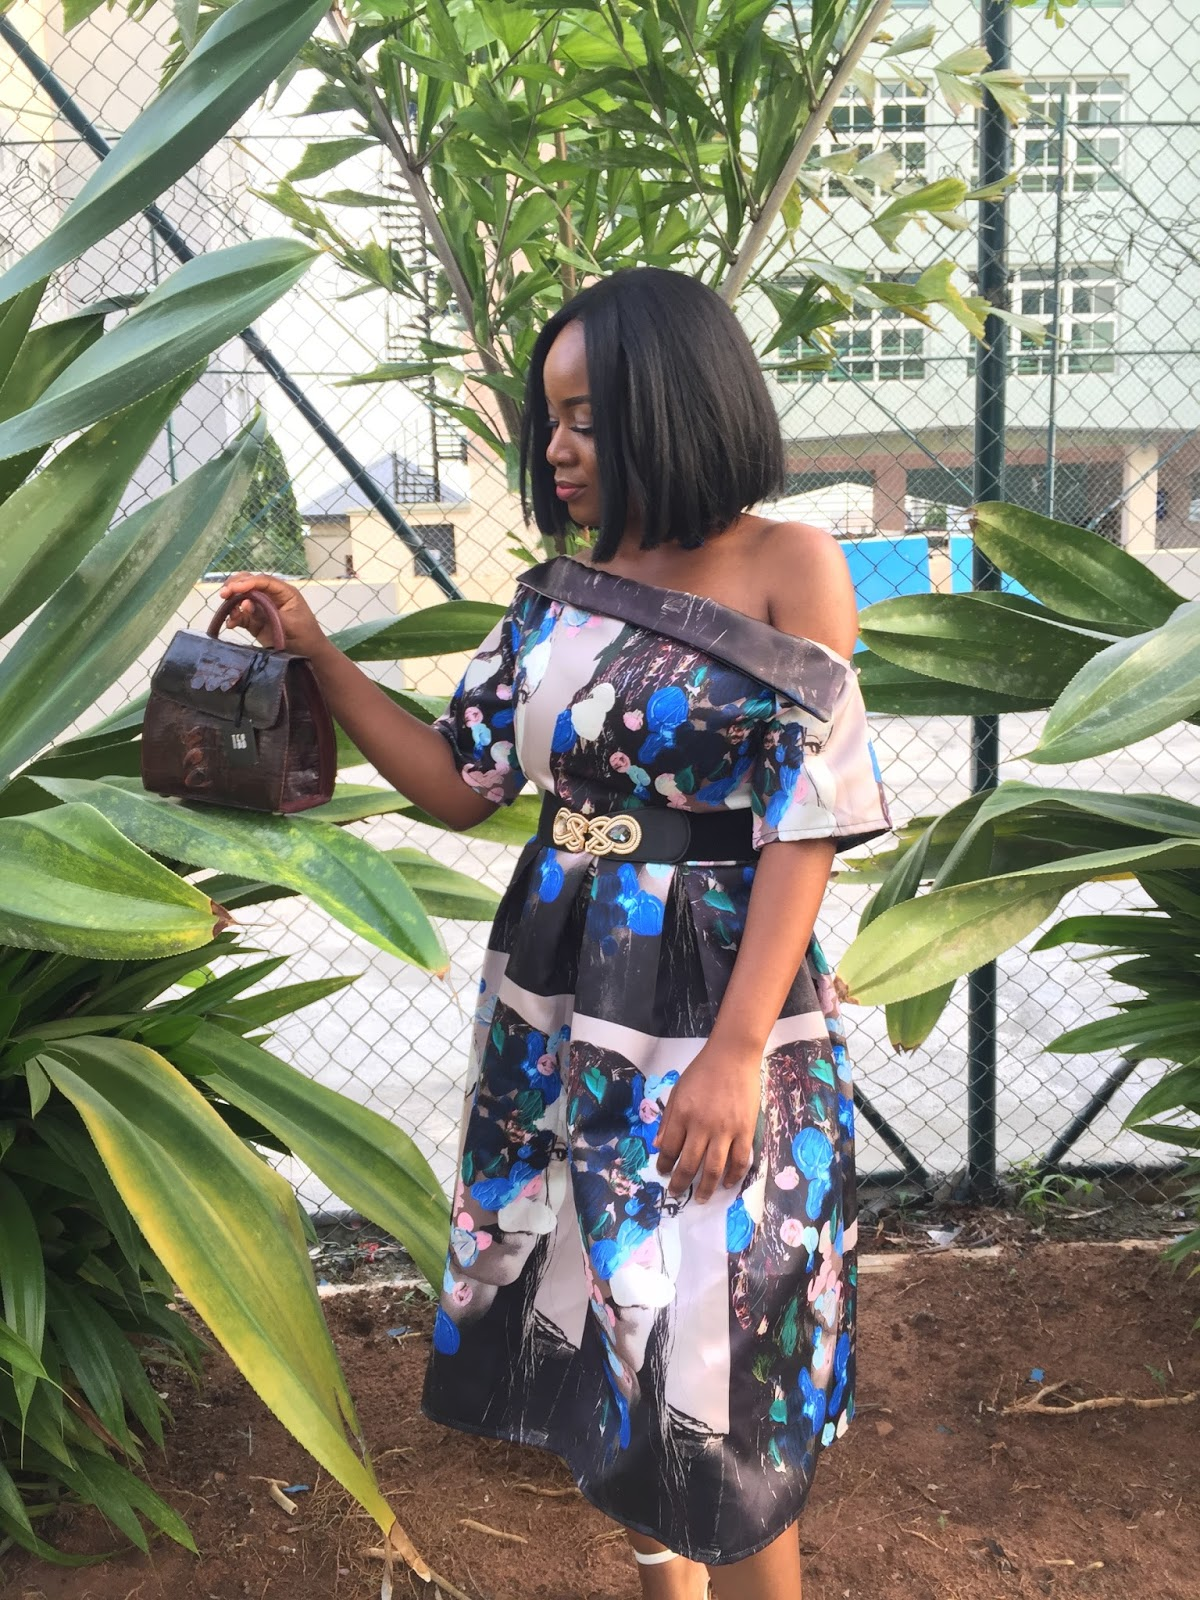 Pleated floral dress or ball dress for formal occasions, weddings, parties, prom, spring summer outfit ideas, trending, the5kshop, munamuoneke